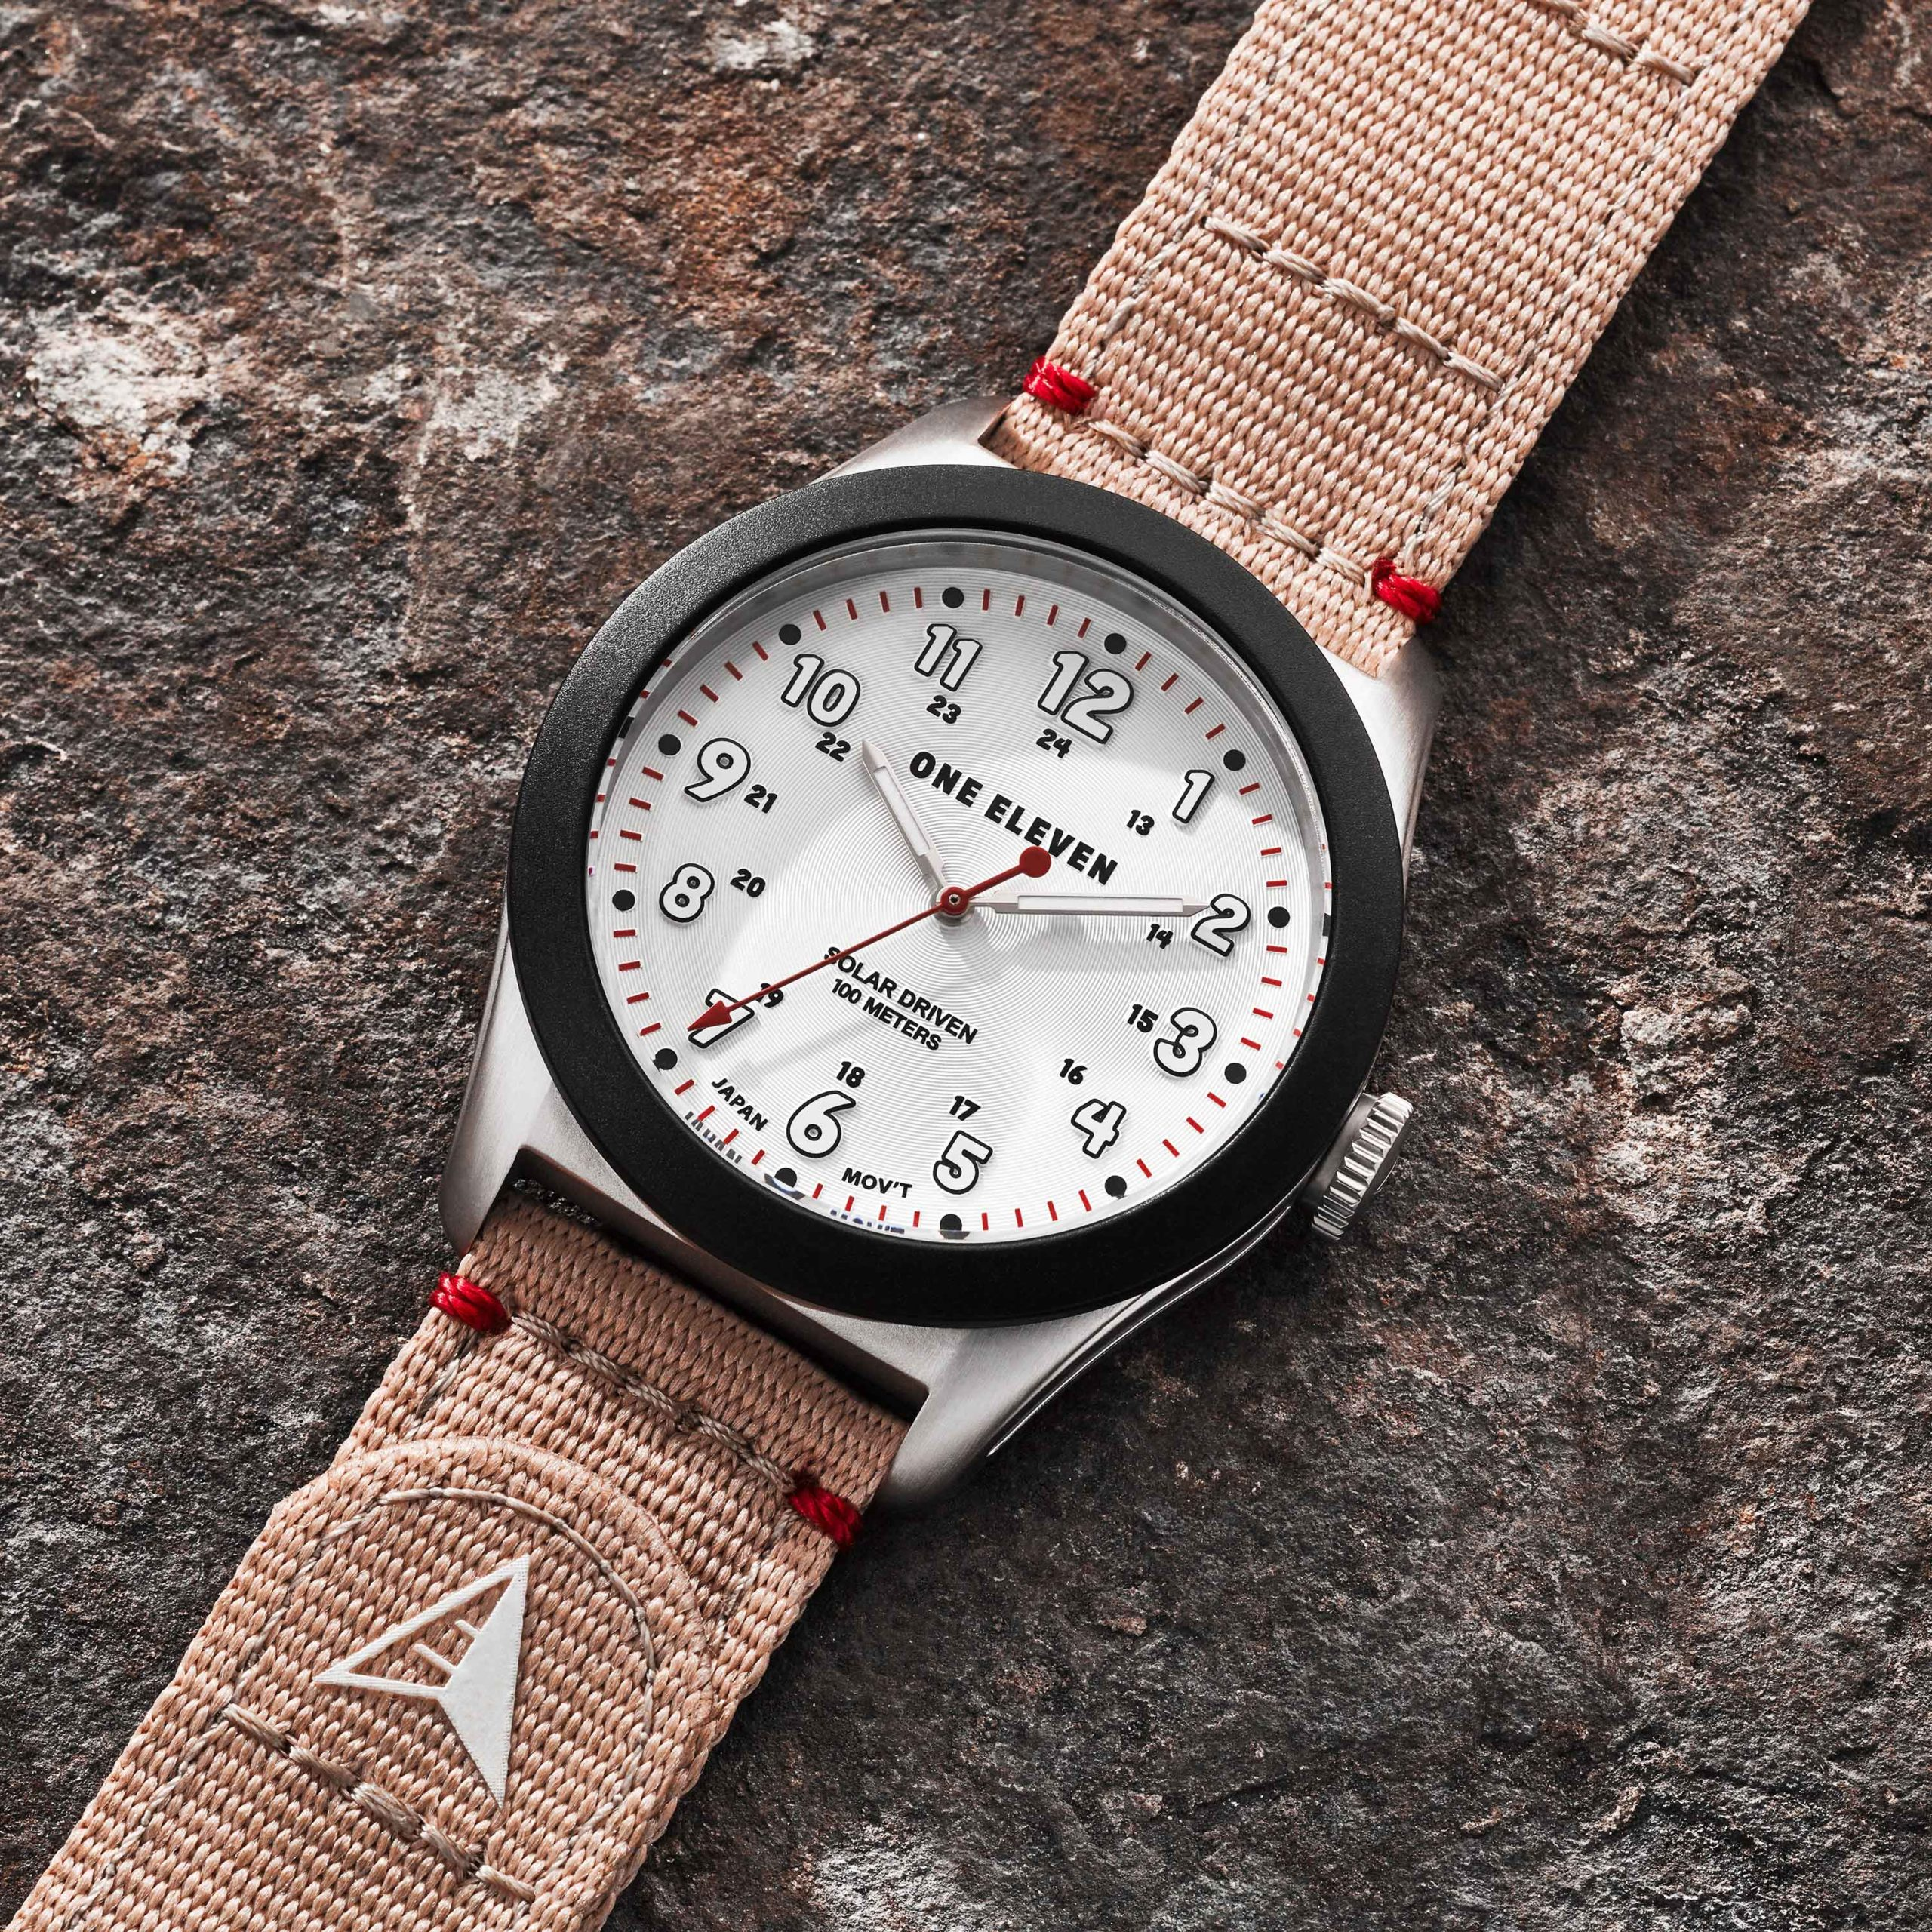 Look No Further for a Stylish, Sustainable Watch – One Eleven Solar Field Watch